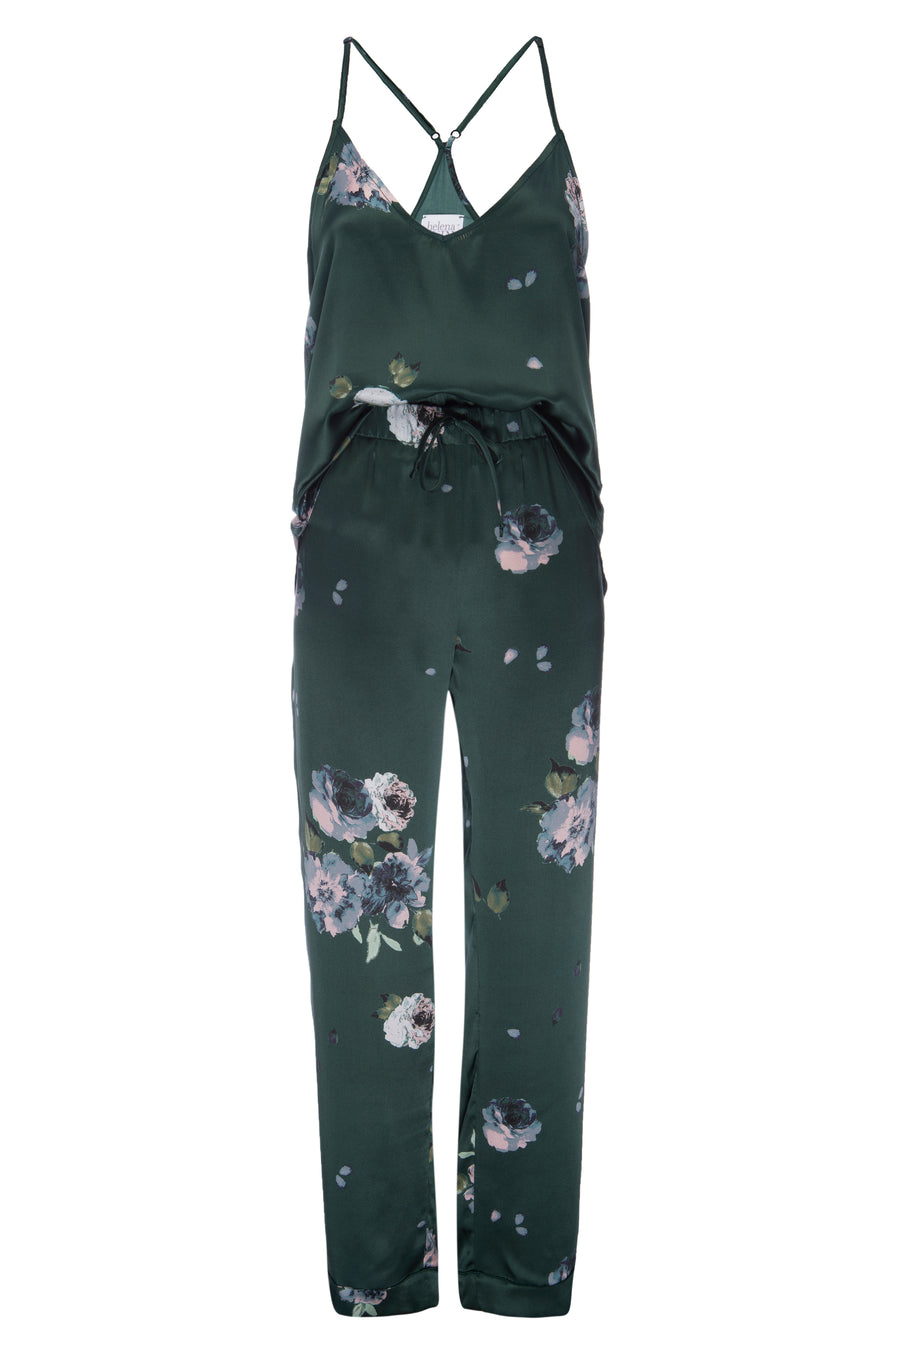 Silk Charmeuse Pants: Emerald Floral Print